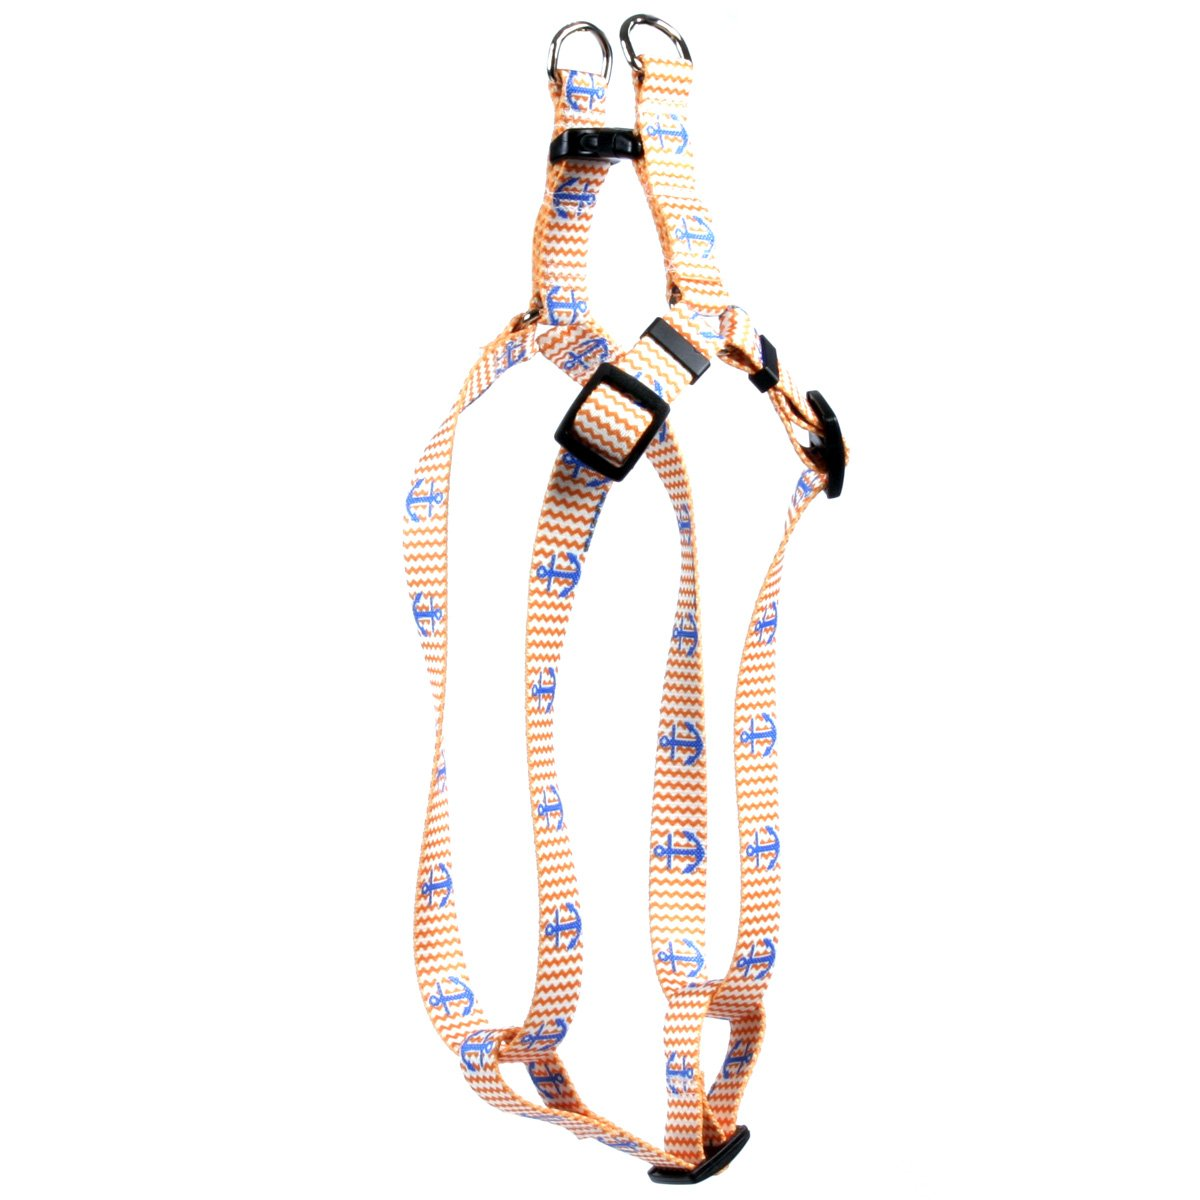 Yellow Dog Design Anchors Away Step-in Dog Harness 3/4'' Wide and Fits Chest Circumference of 15 to 25'', Medium by Yellow Dog Design